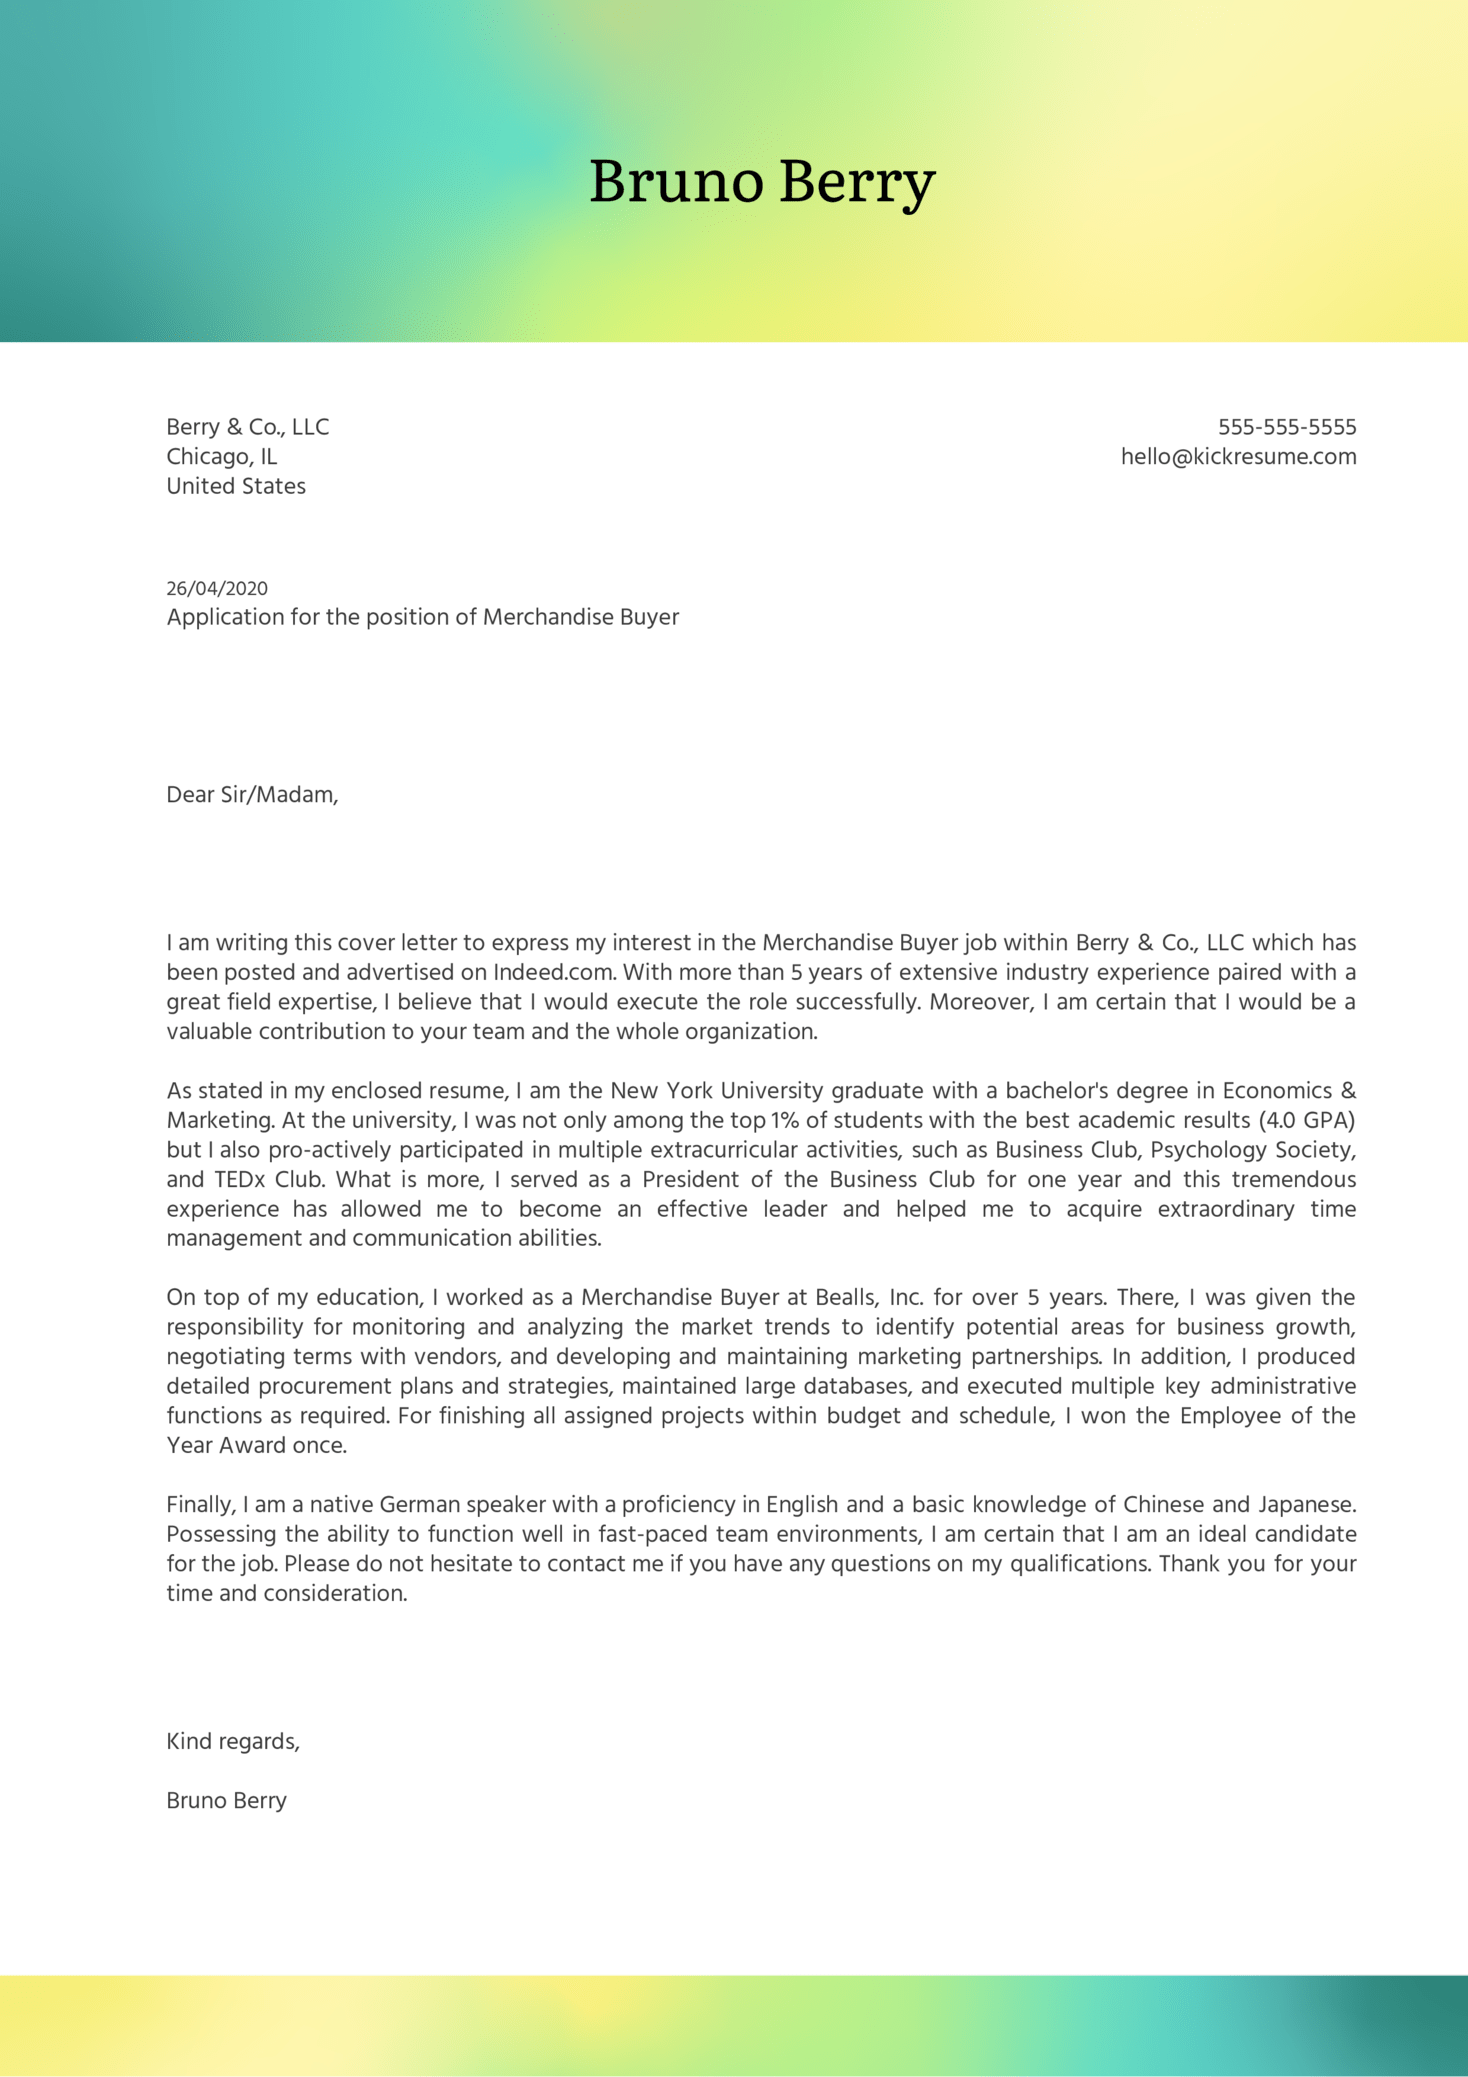 Merchandise Buyer Cover Letter Example